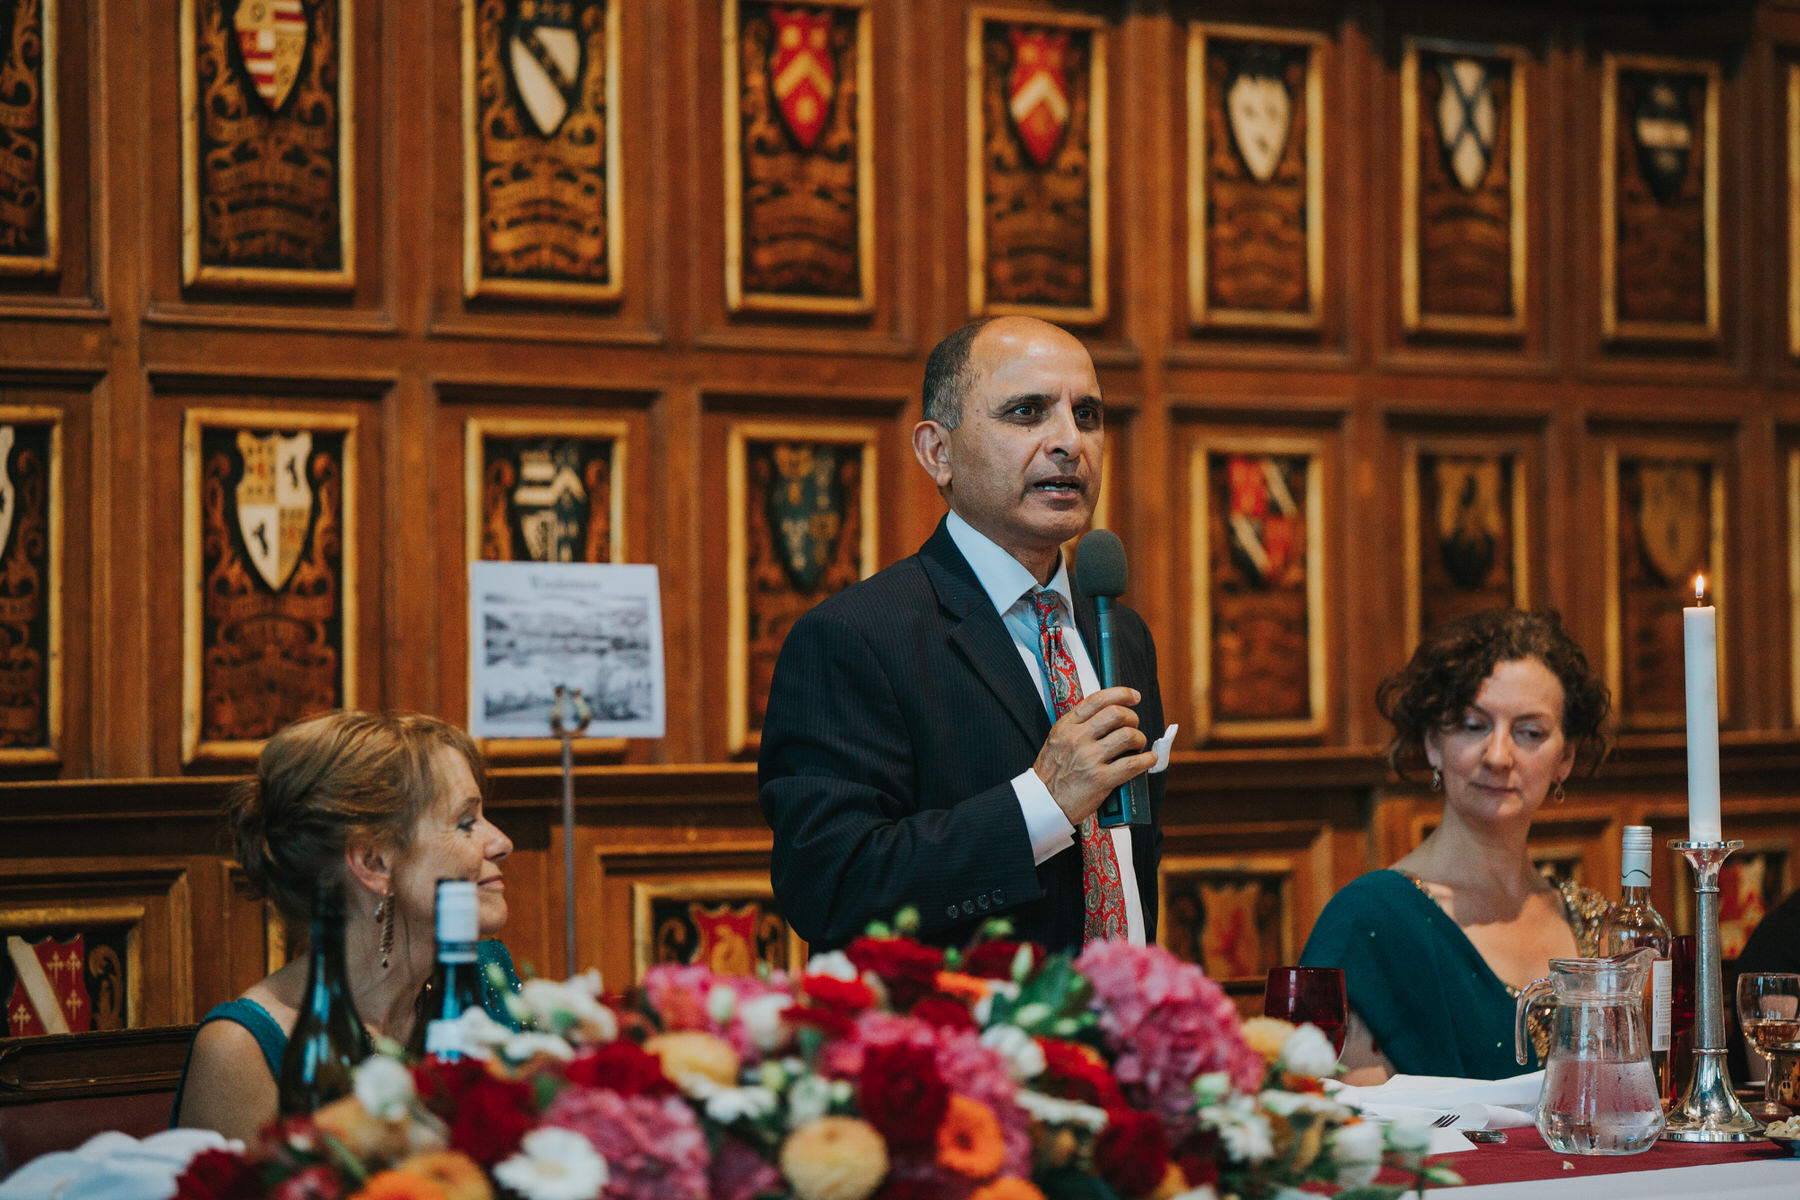 206-Anglo-Asian-Wedding-grooms-father-speeches-Middle-temple.jpg